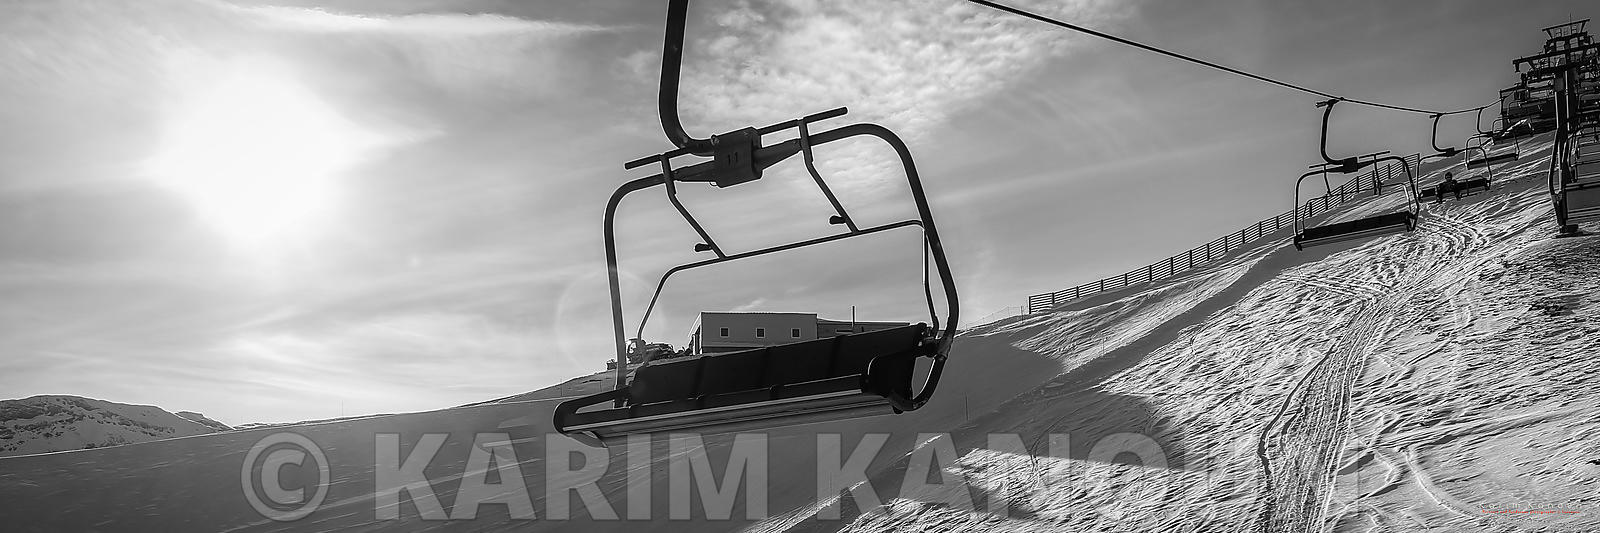 Panorama - Emty chairlift serie with sun and snow